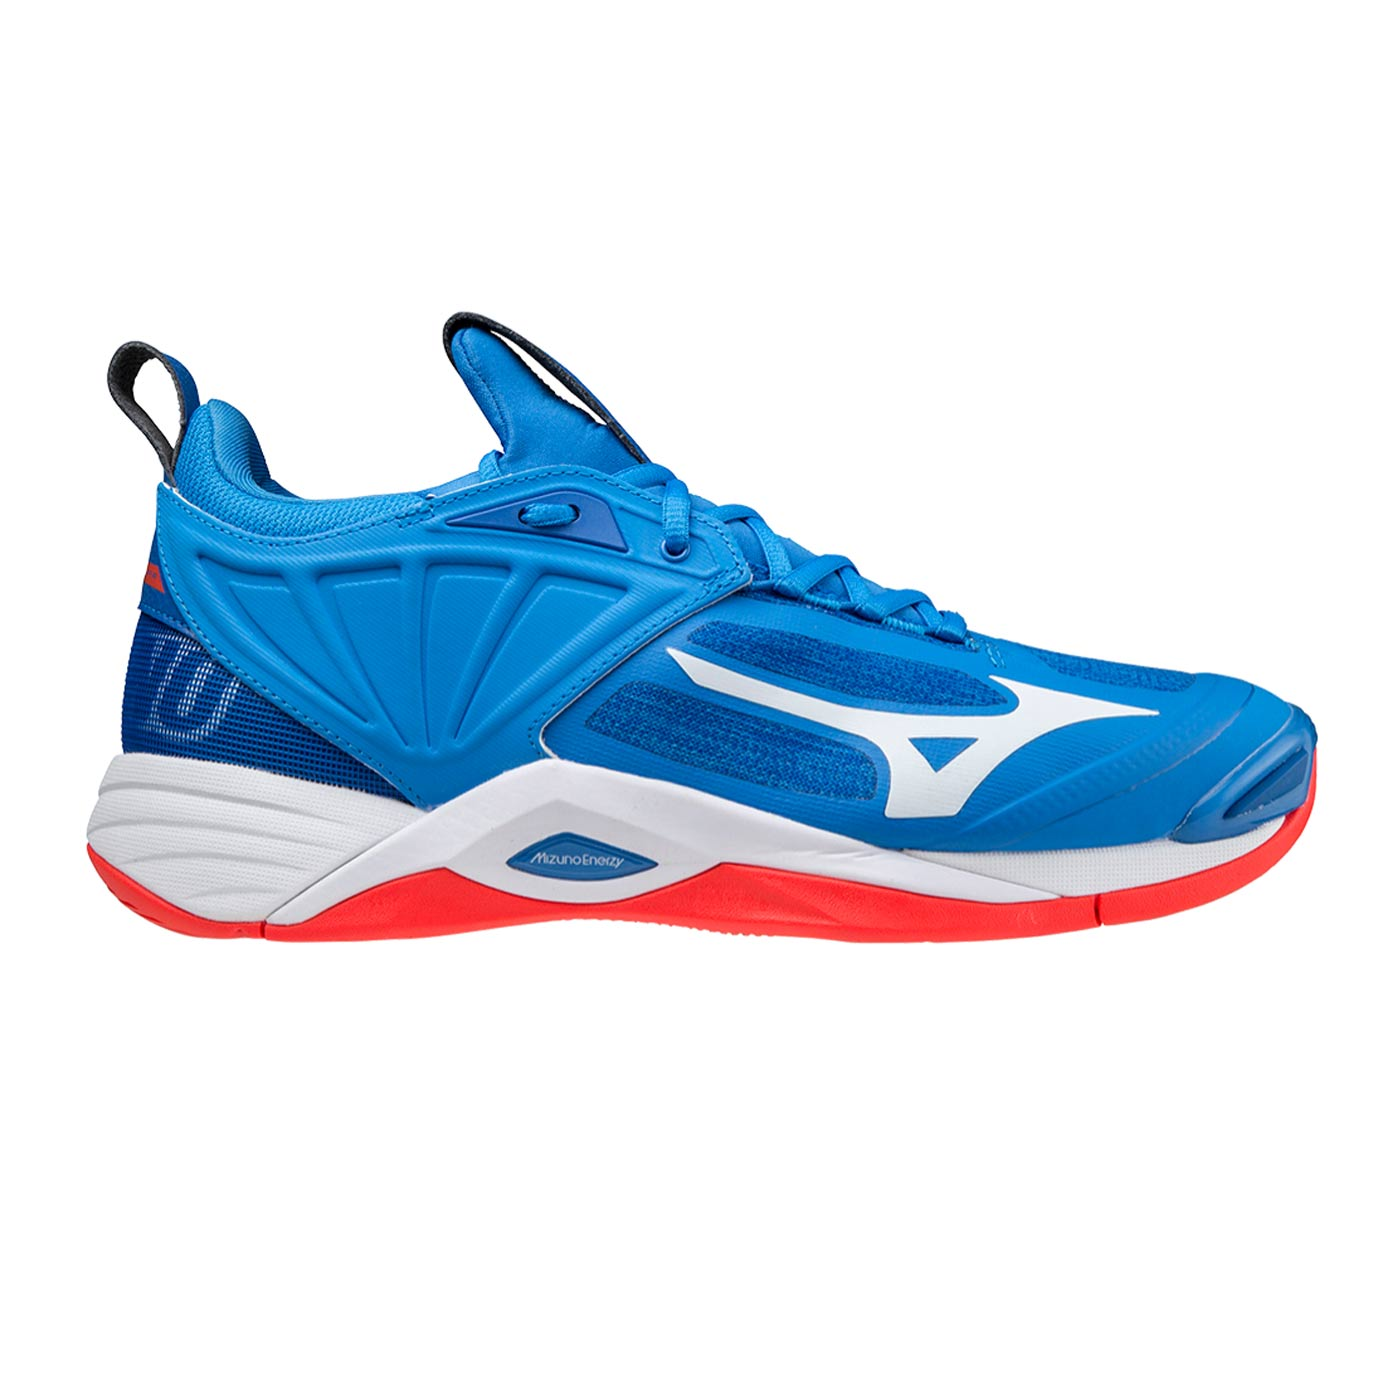 WAVE MOMENTUM 2-FRENCH BLUE/WHITE/IGNITION RED